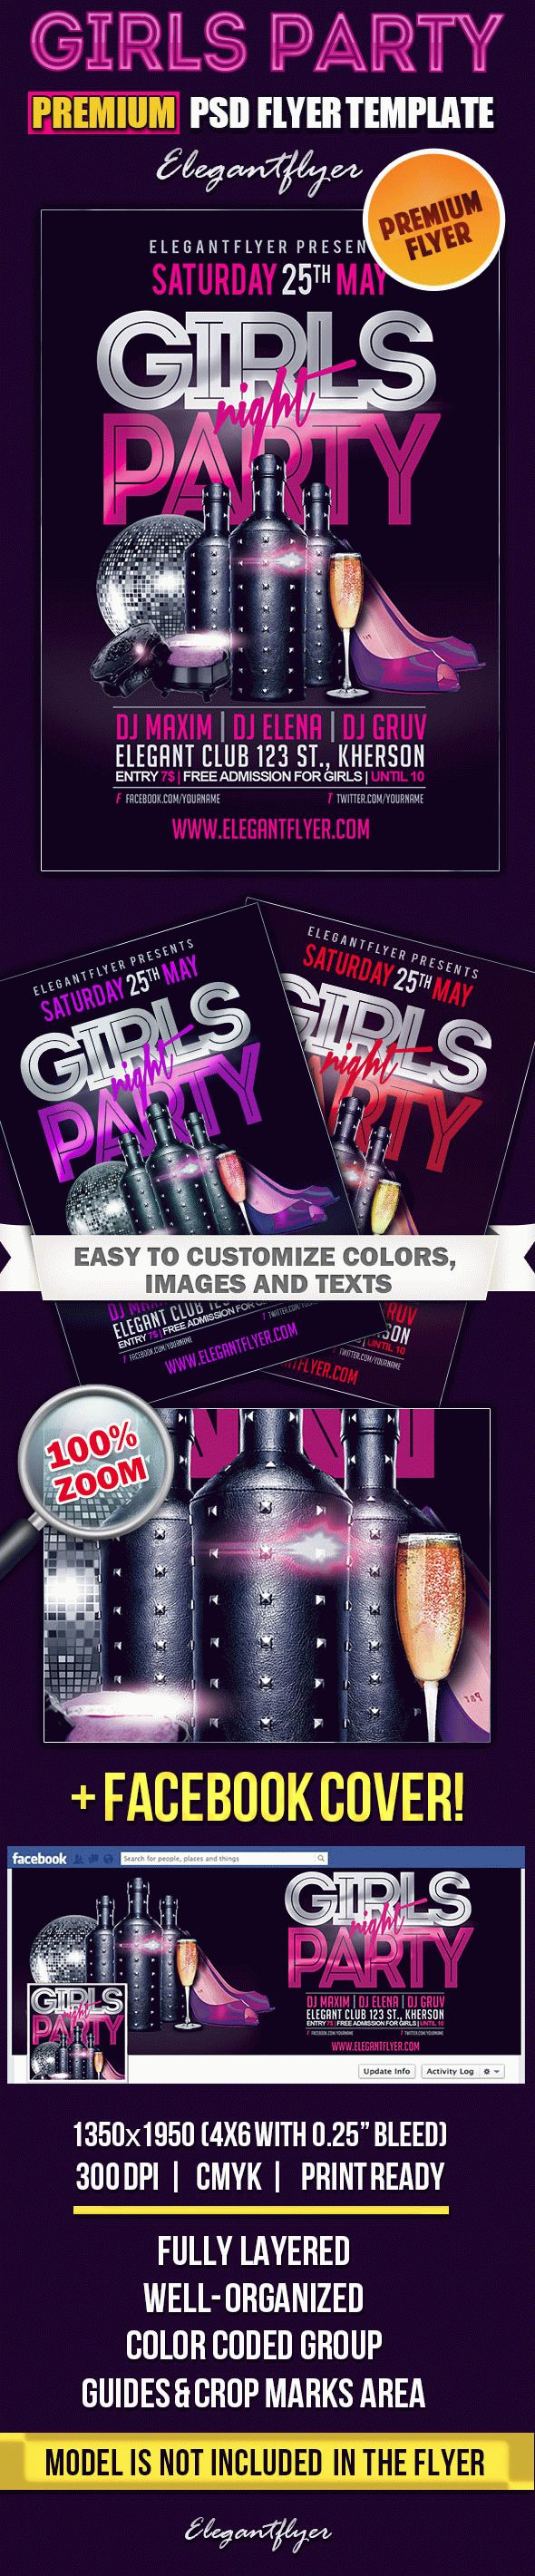 Poster for Girls Night Party